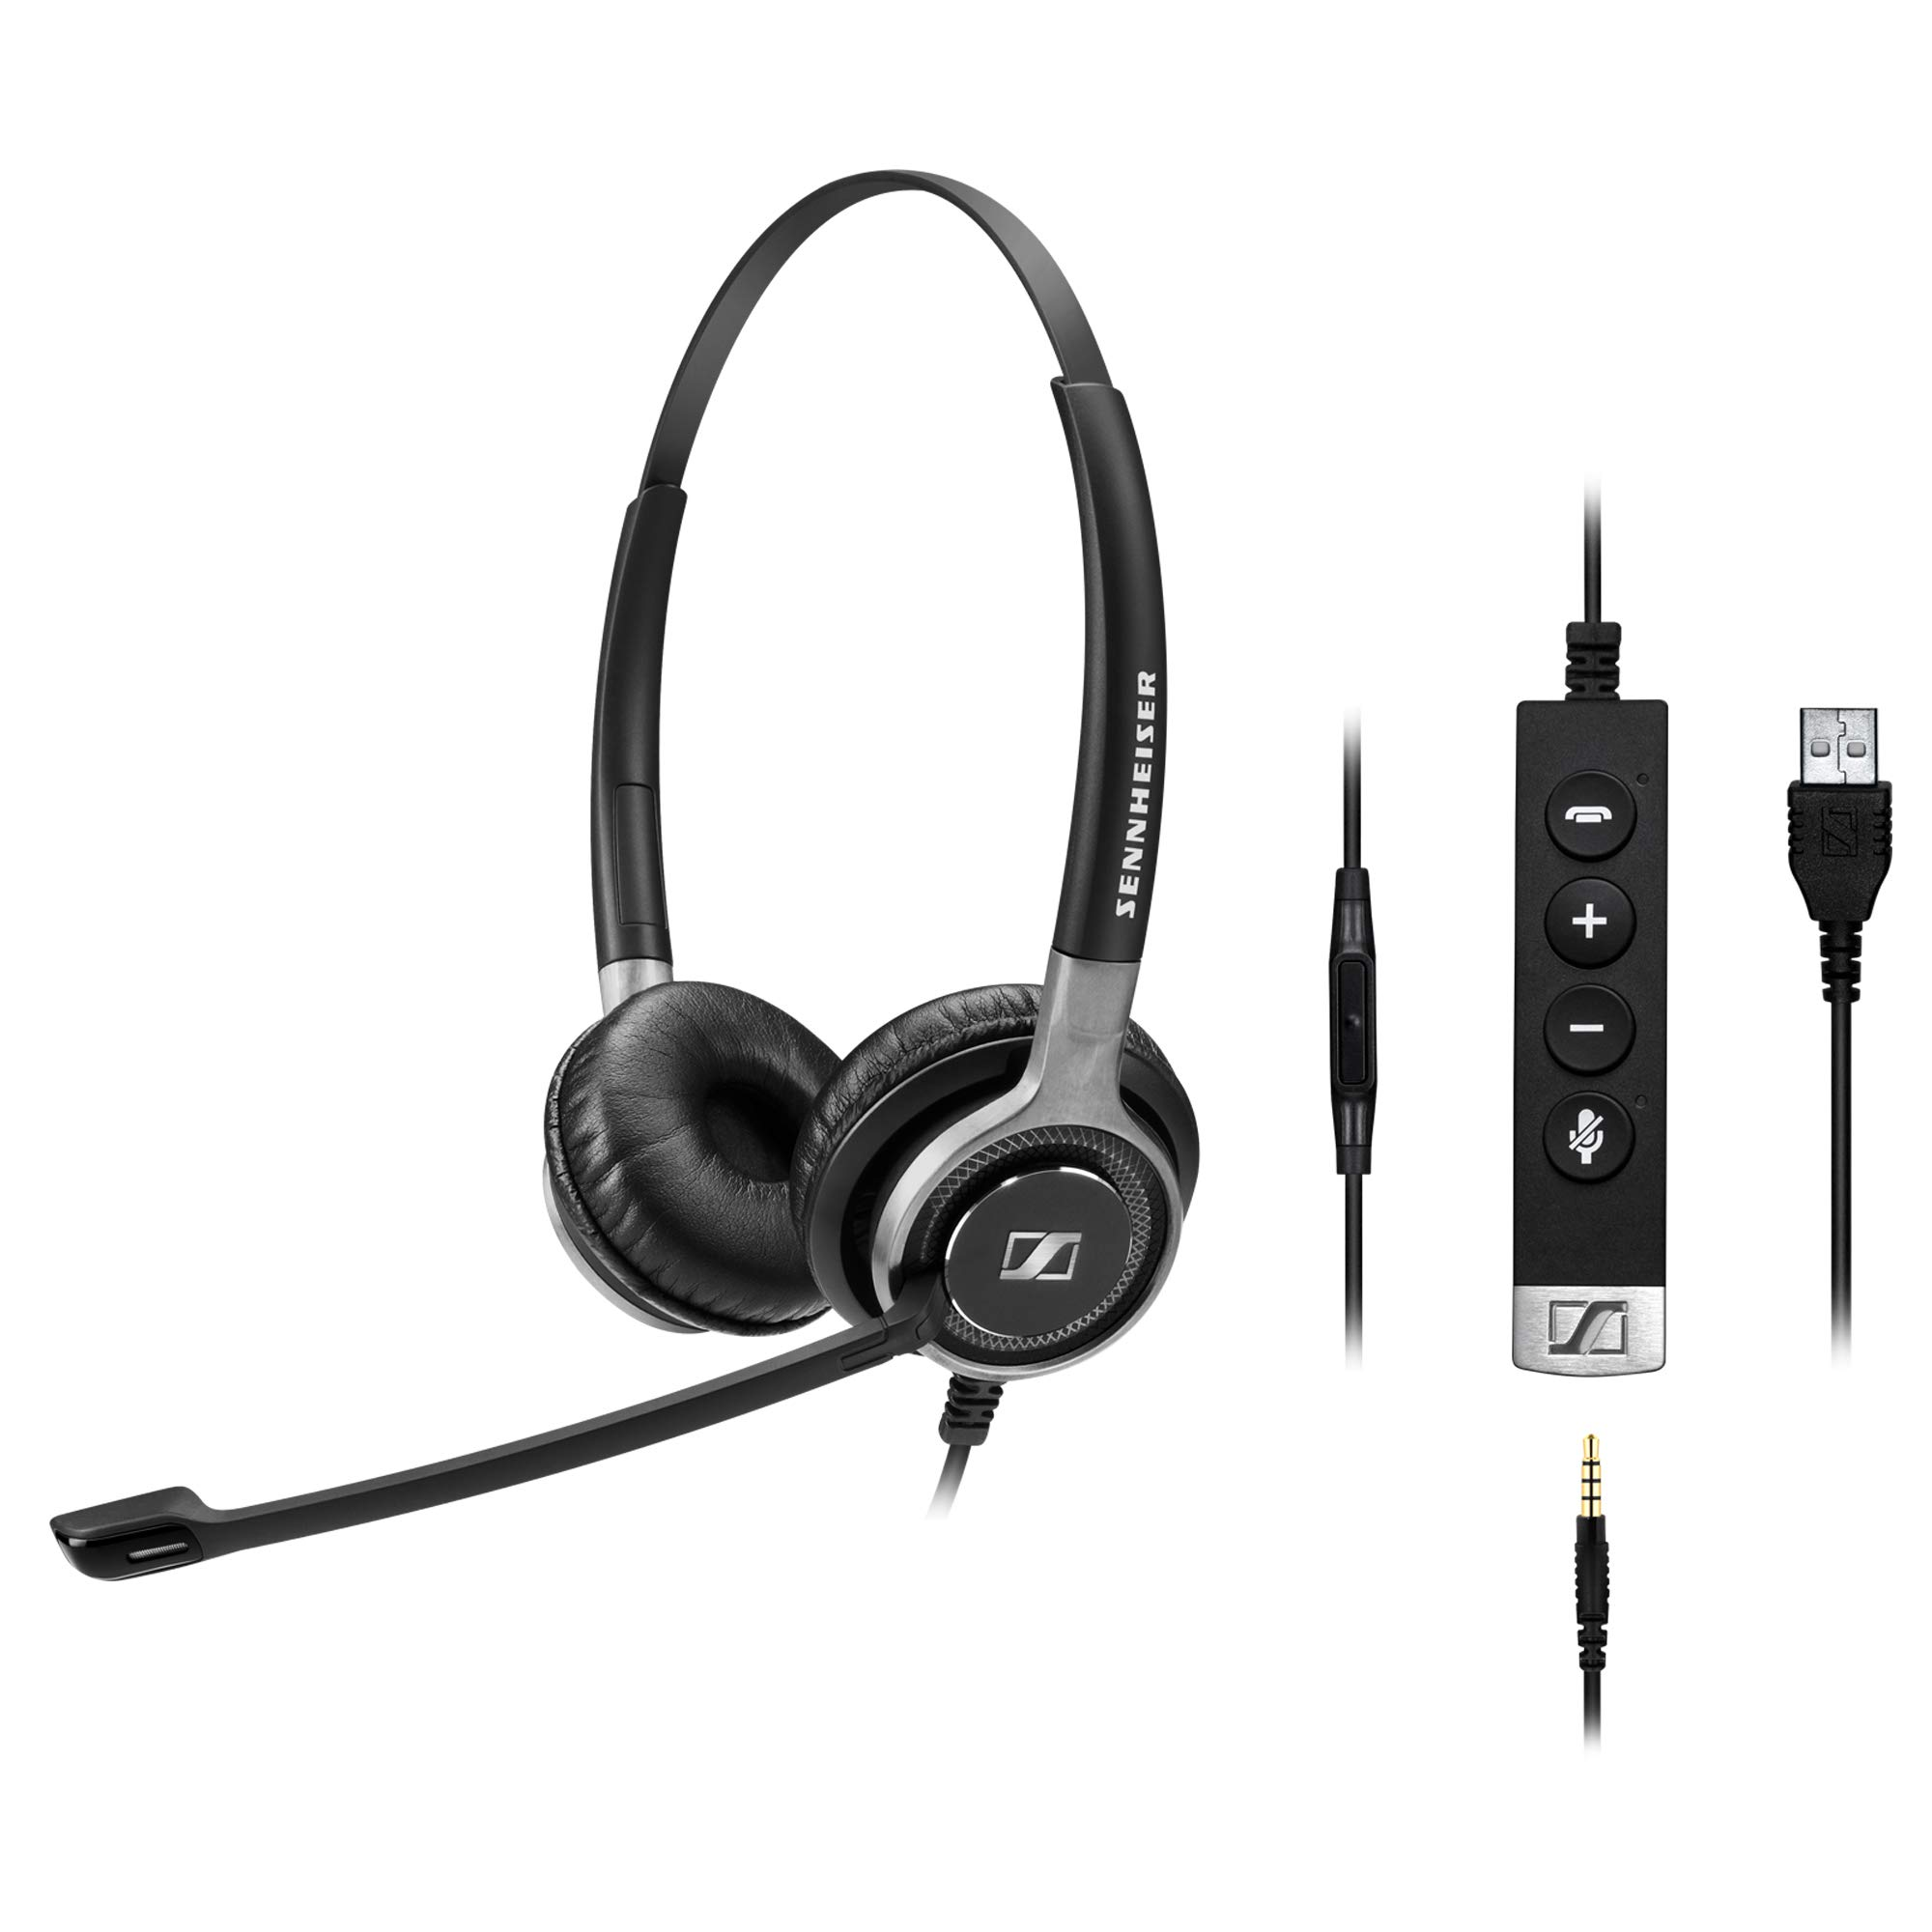 Sennheiser SC 665 USB (507257) - Double-Sided Business Headset | UC Optimized and Skype for Business Certified | For Mobile Phone, Tablet, Softphone, and PC (Black) by Sennheiser Enterprise Solution